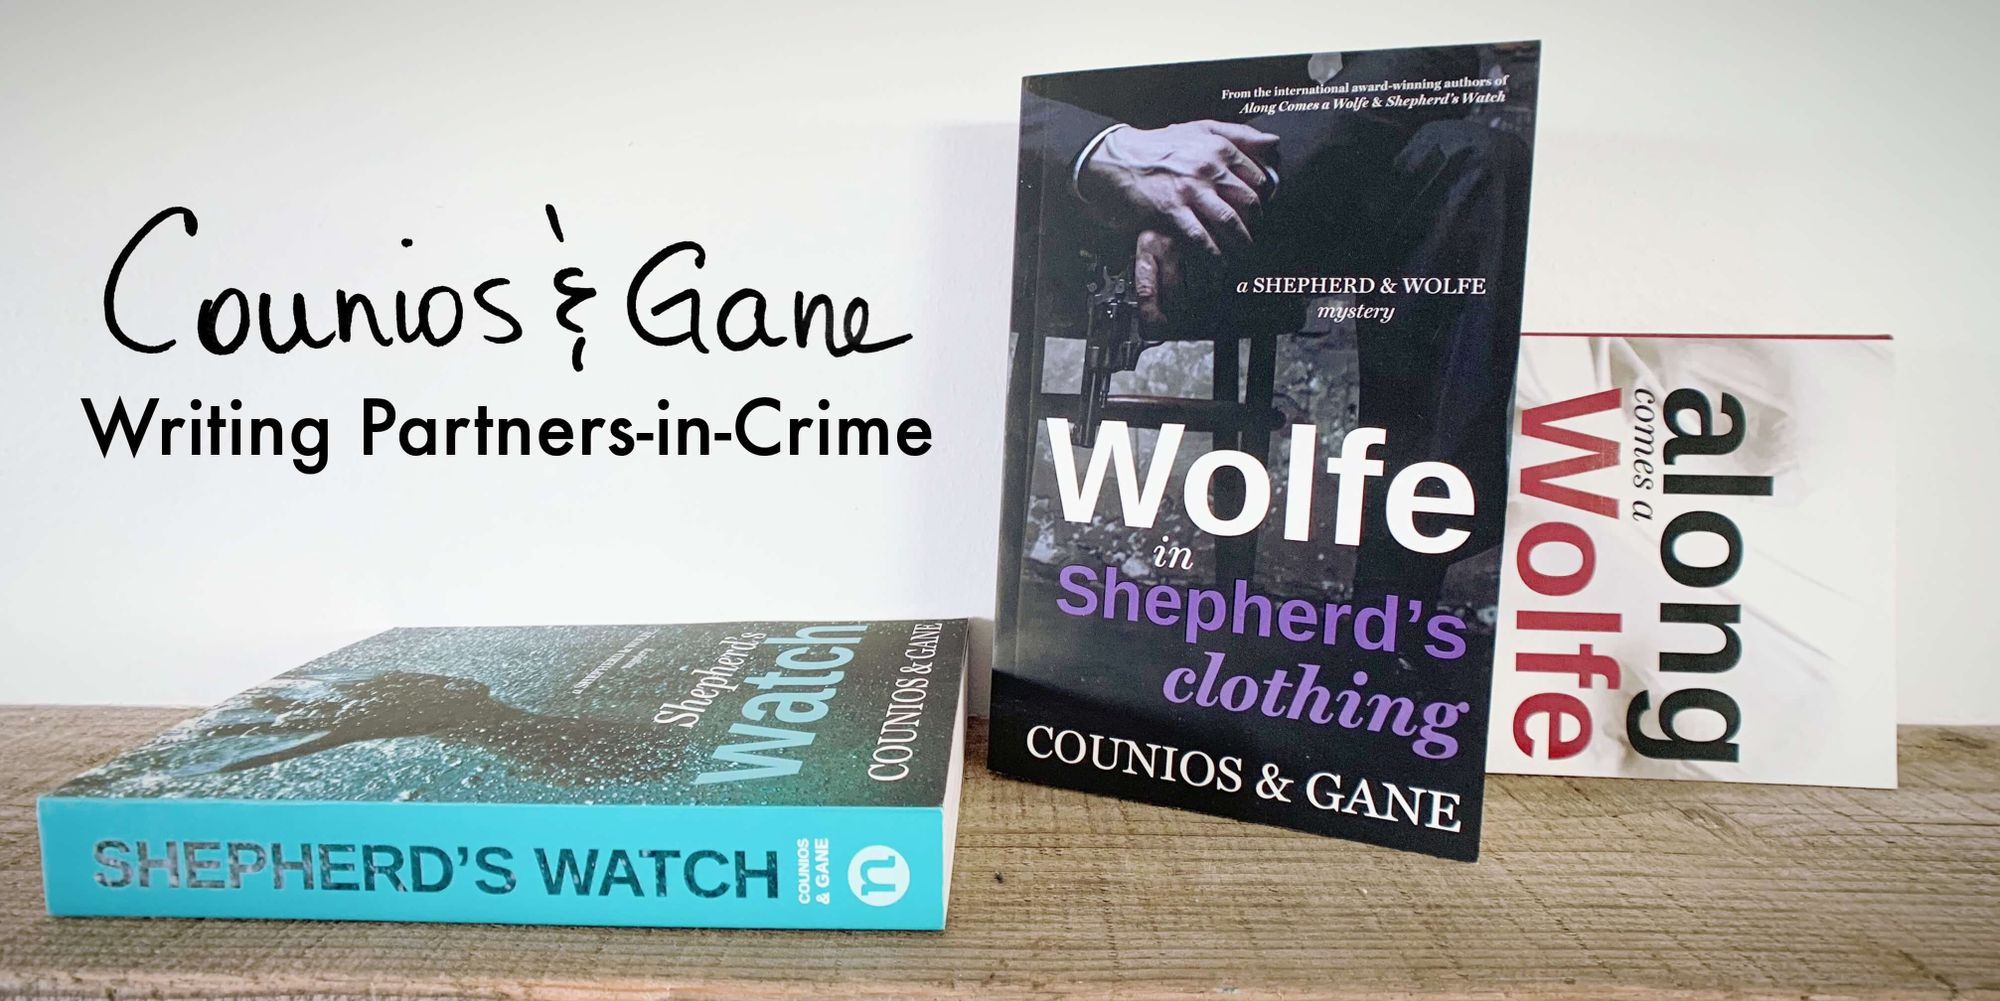 The Shepherd and Wolfe mysteries